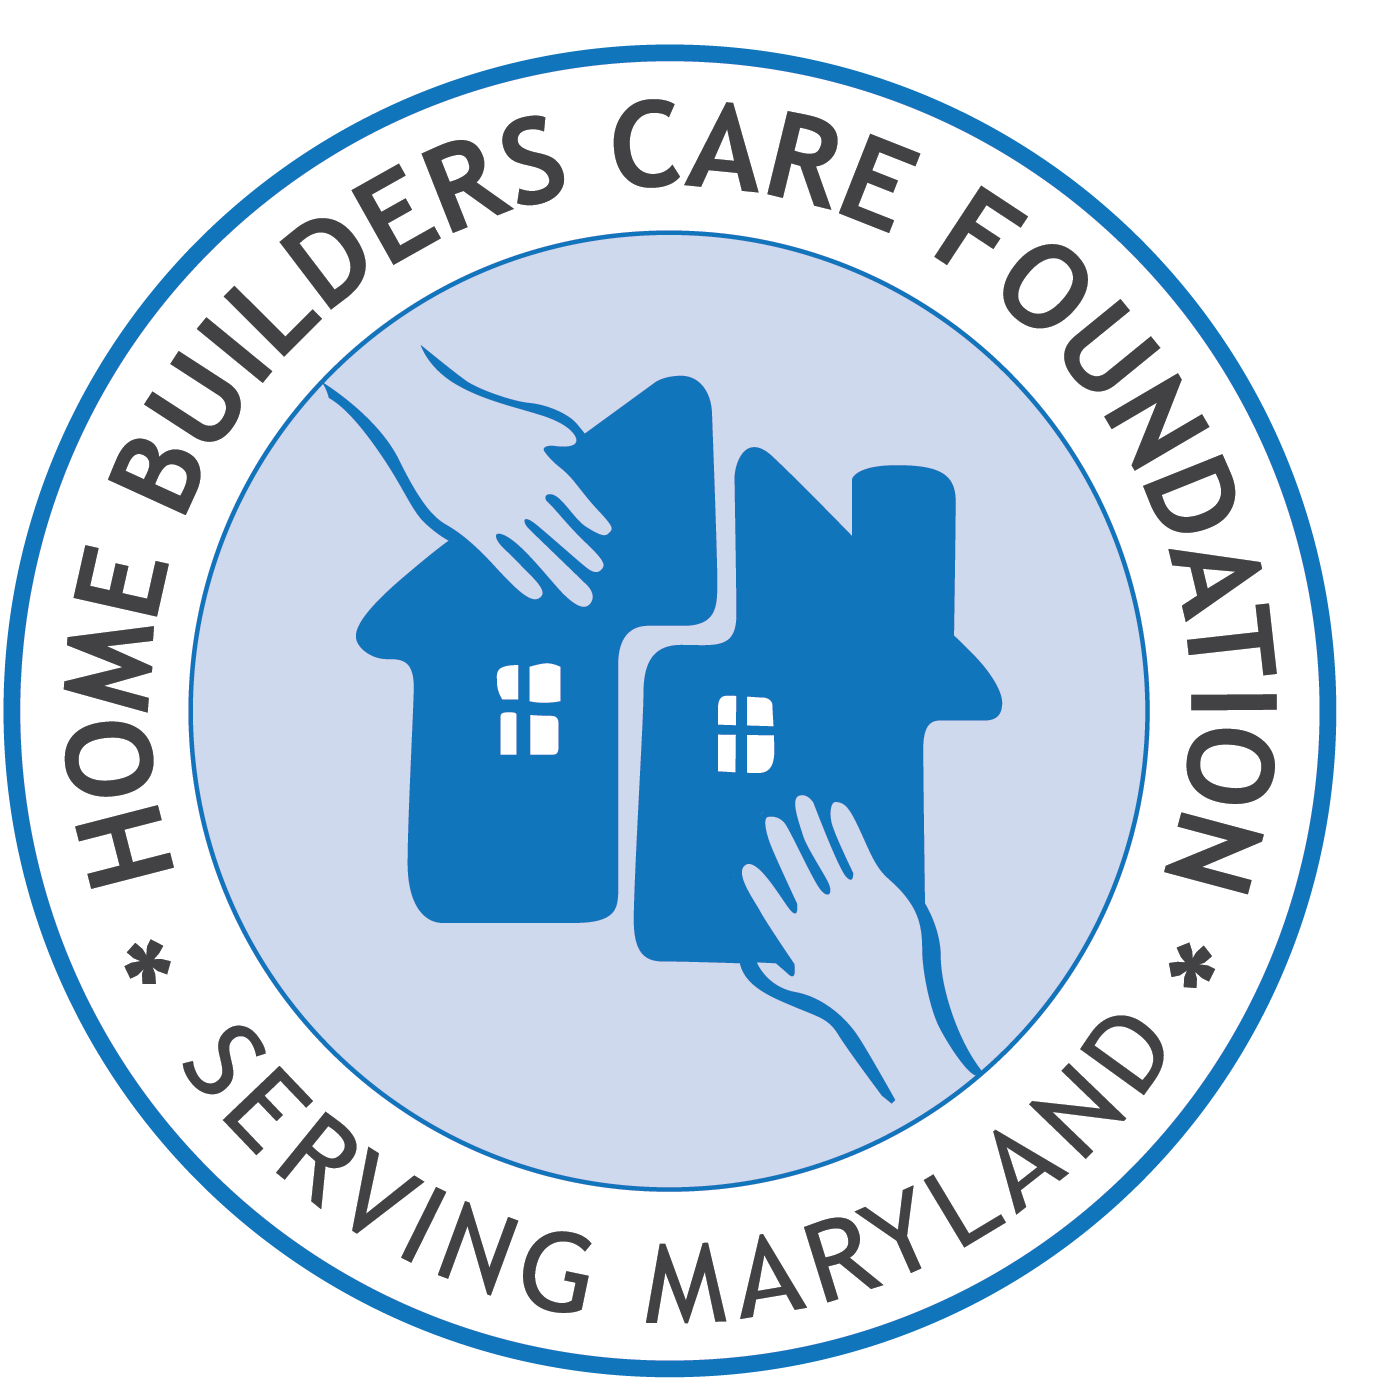 Builders Care Foundation board meeting